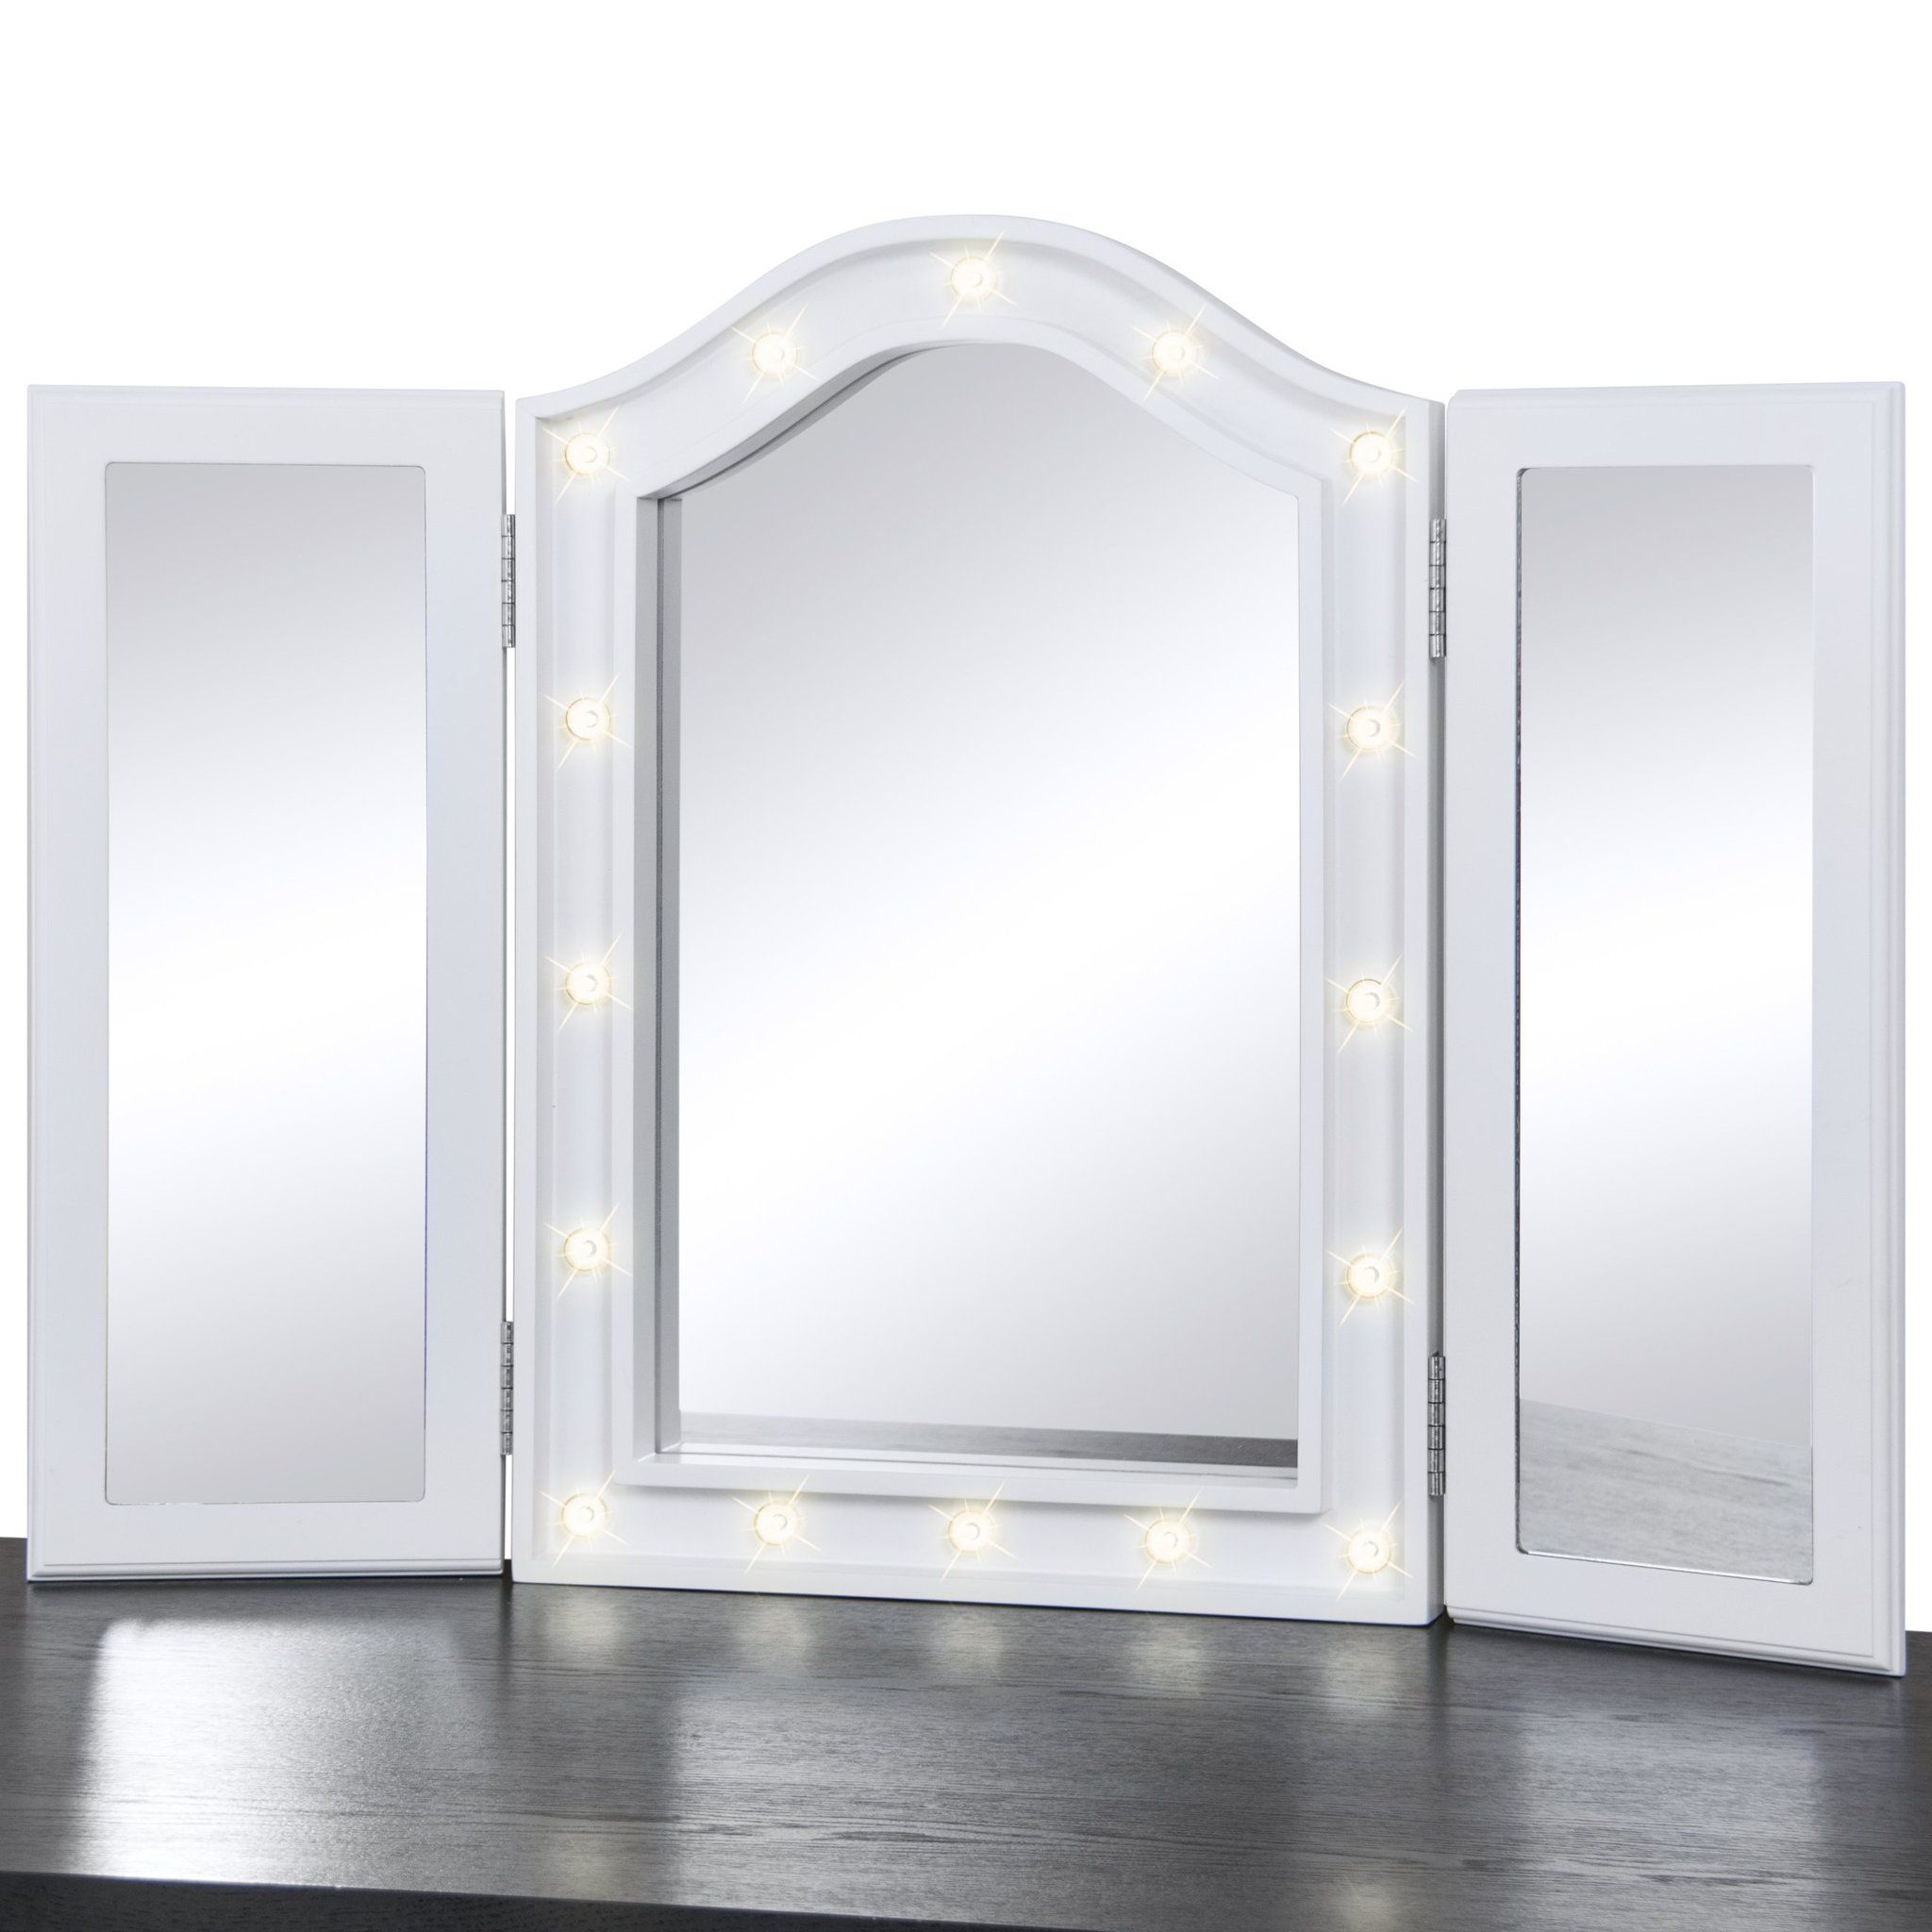 Tri Fold Vanity Mirror With Lights Gorgeous Lit Tabletop Trifold Vanity Mirror W Led Lights  White  Tri Fold Design Decoration